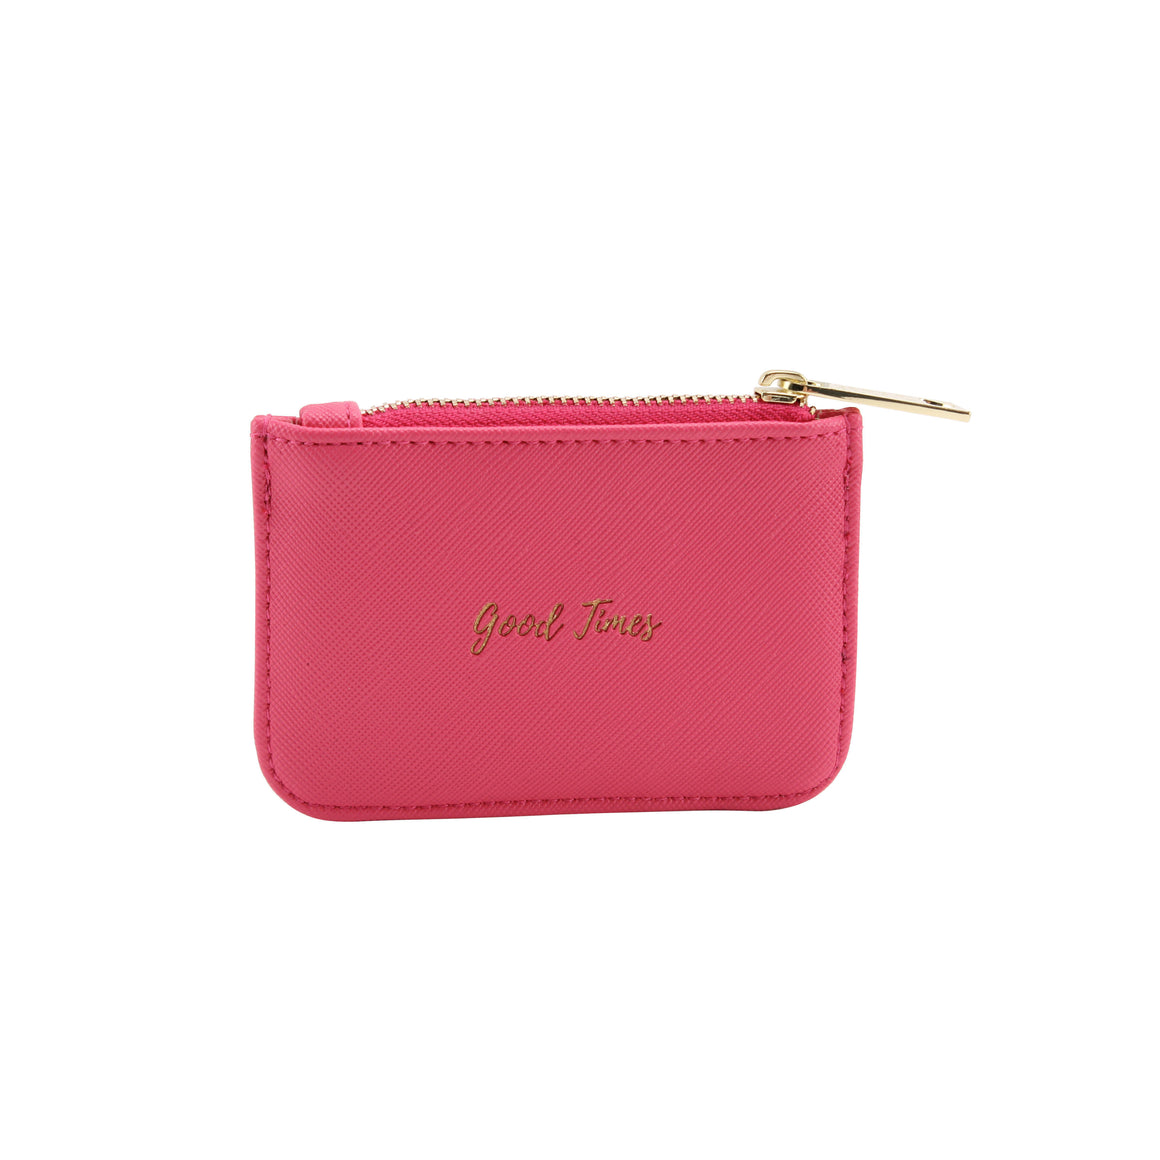 Willow & Rose 'Good Times' Fuchsia Coin Purse - The Love Trees